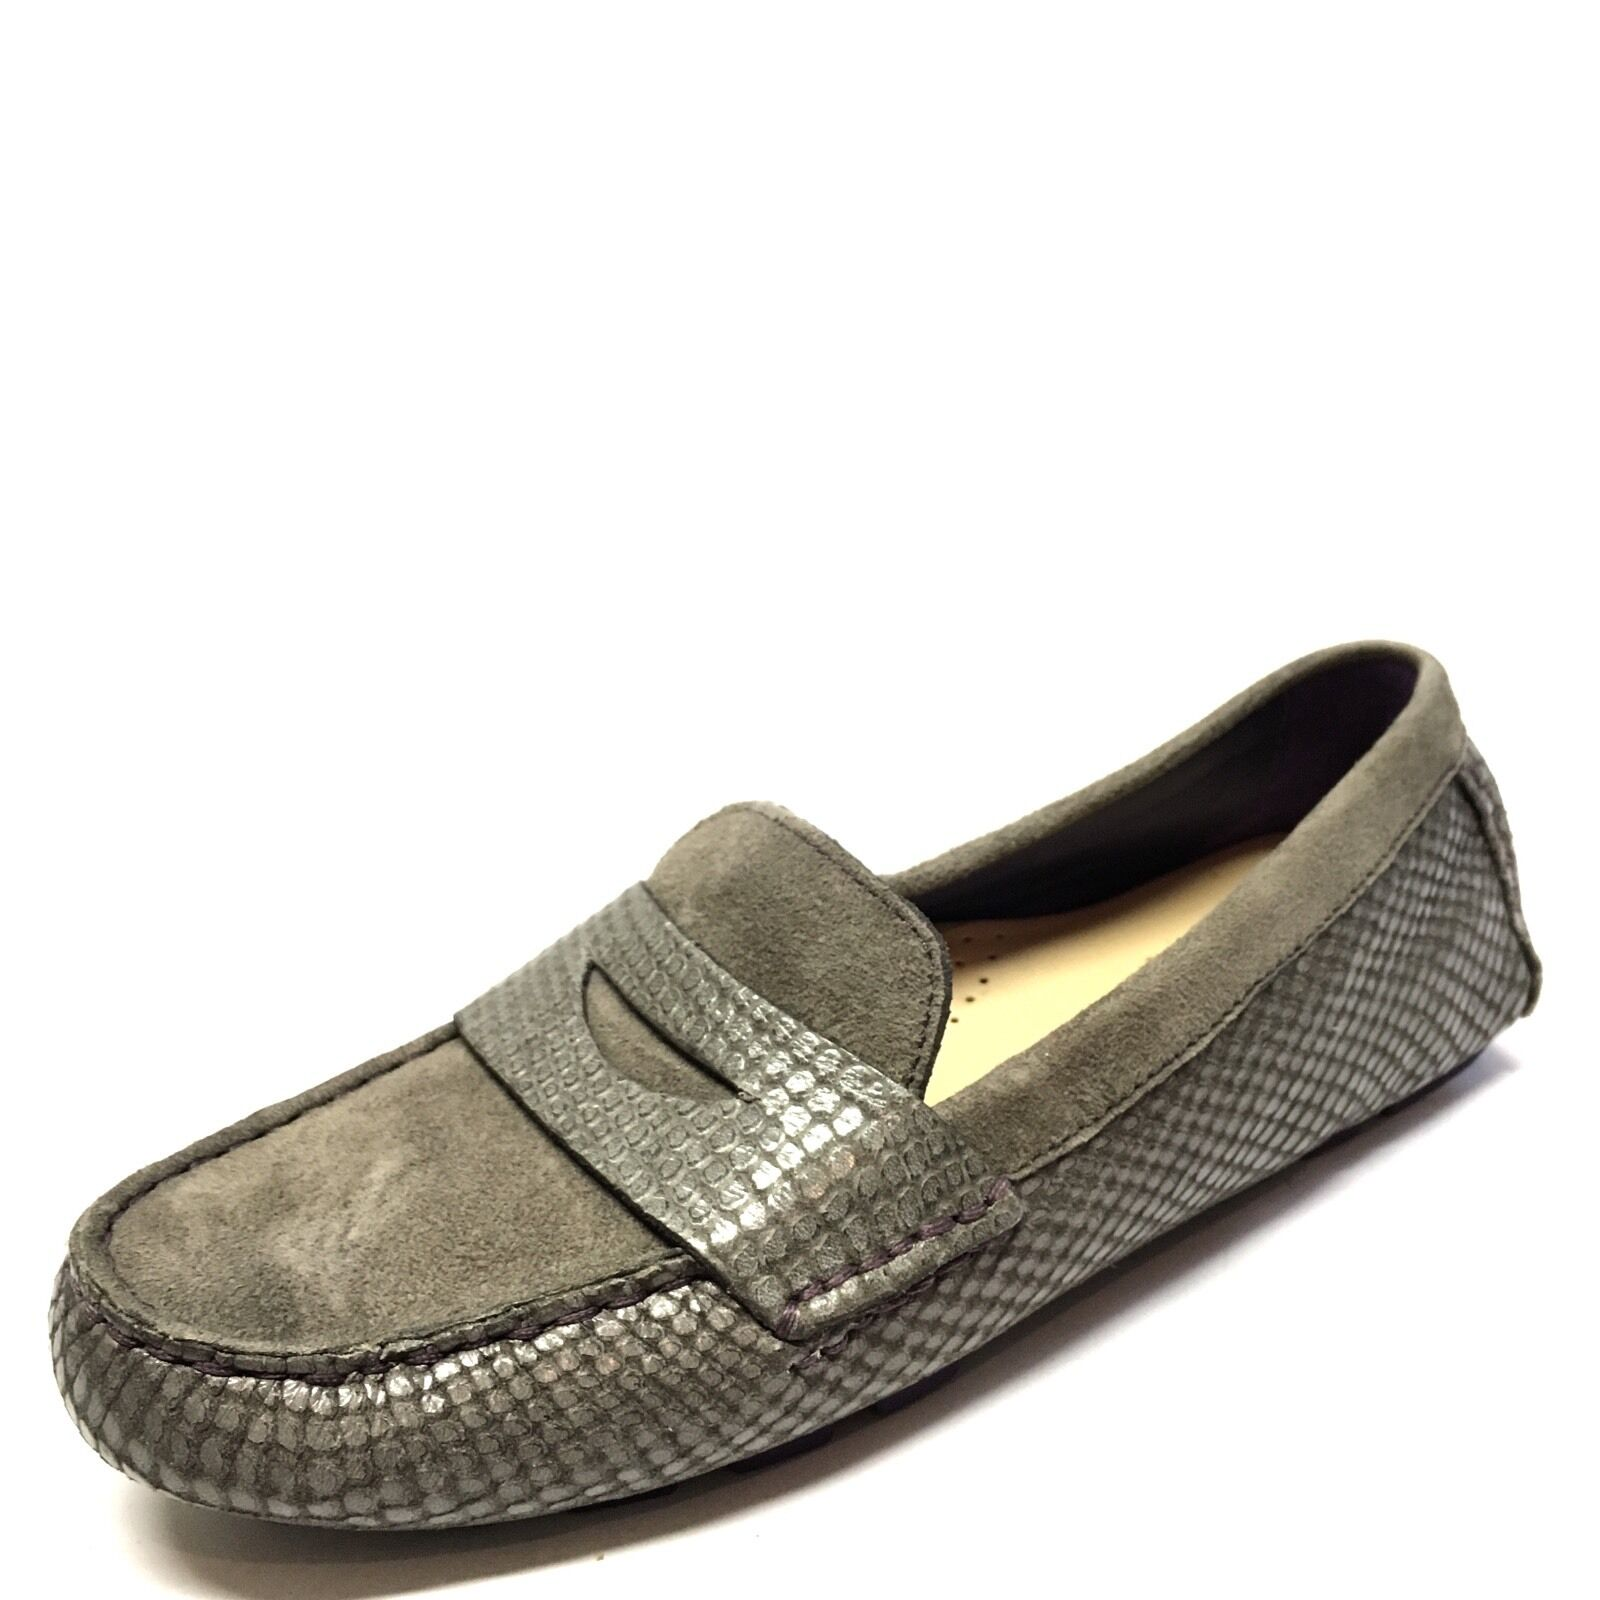 Cole Haan Air Sadie Damenschuhe Gray Suede Croc Driving Mocs Loafers Größe 5.5 M